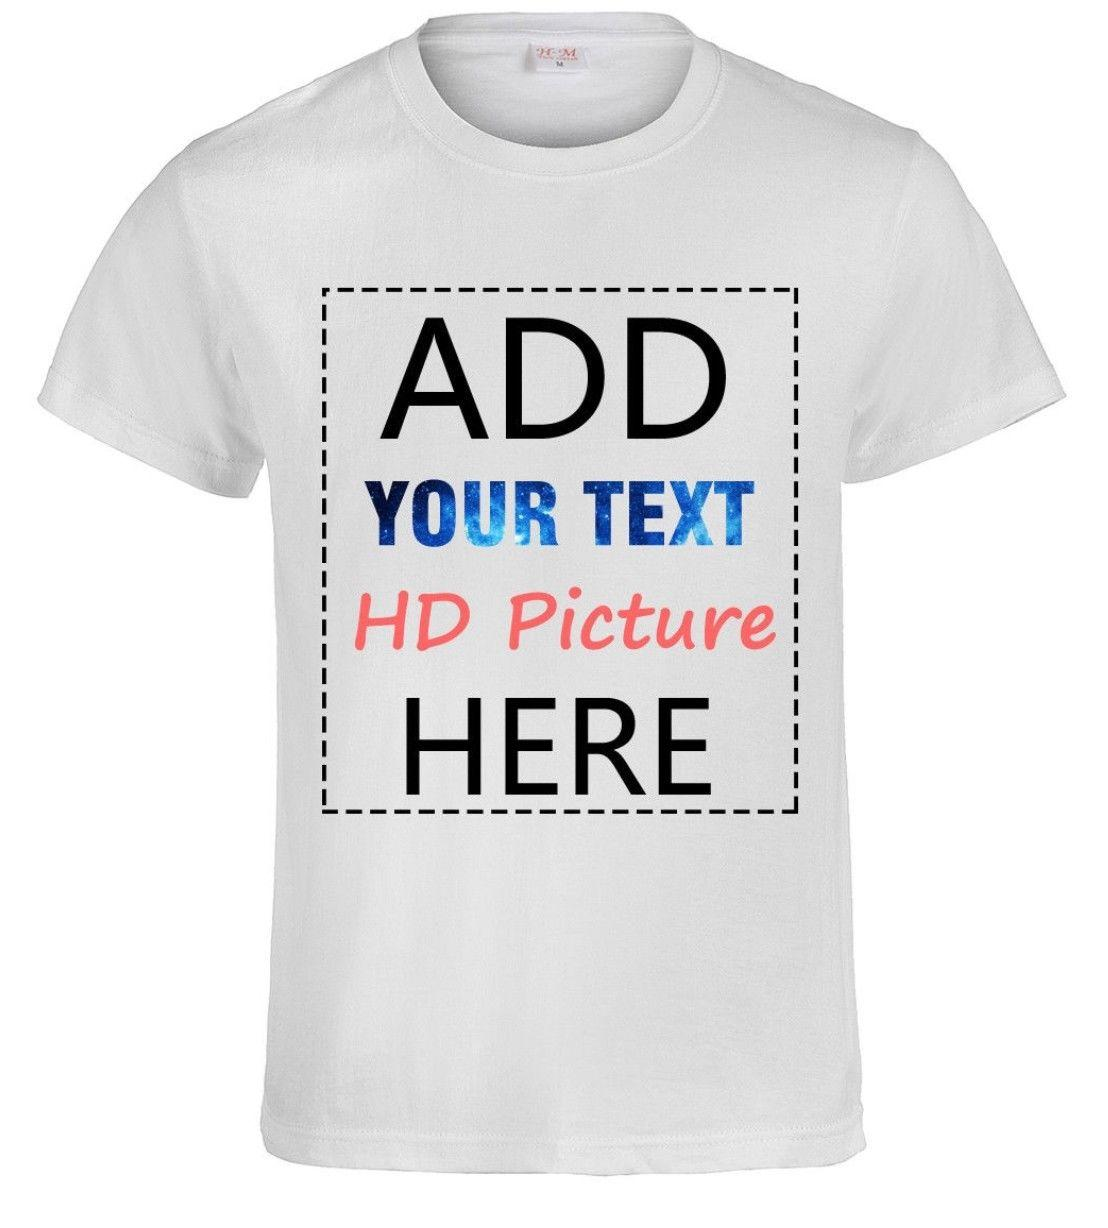 Personalized Custom Print Your Own Text T-Shirt Customized Tee